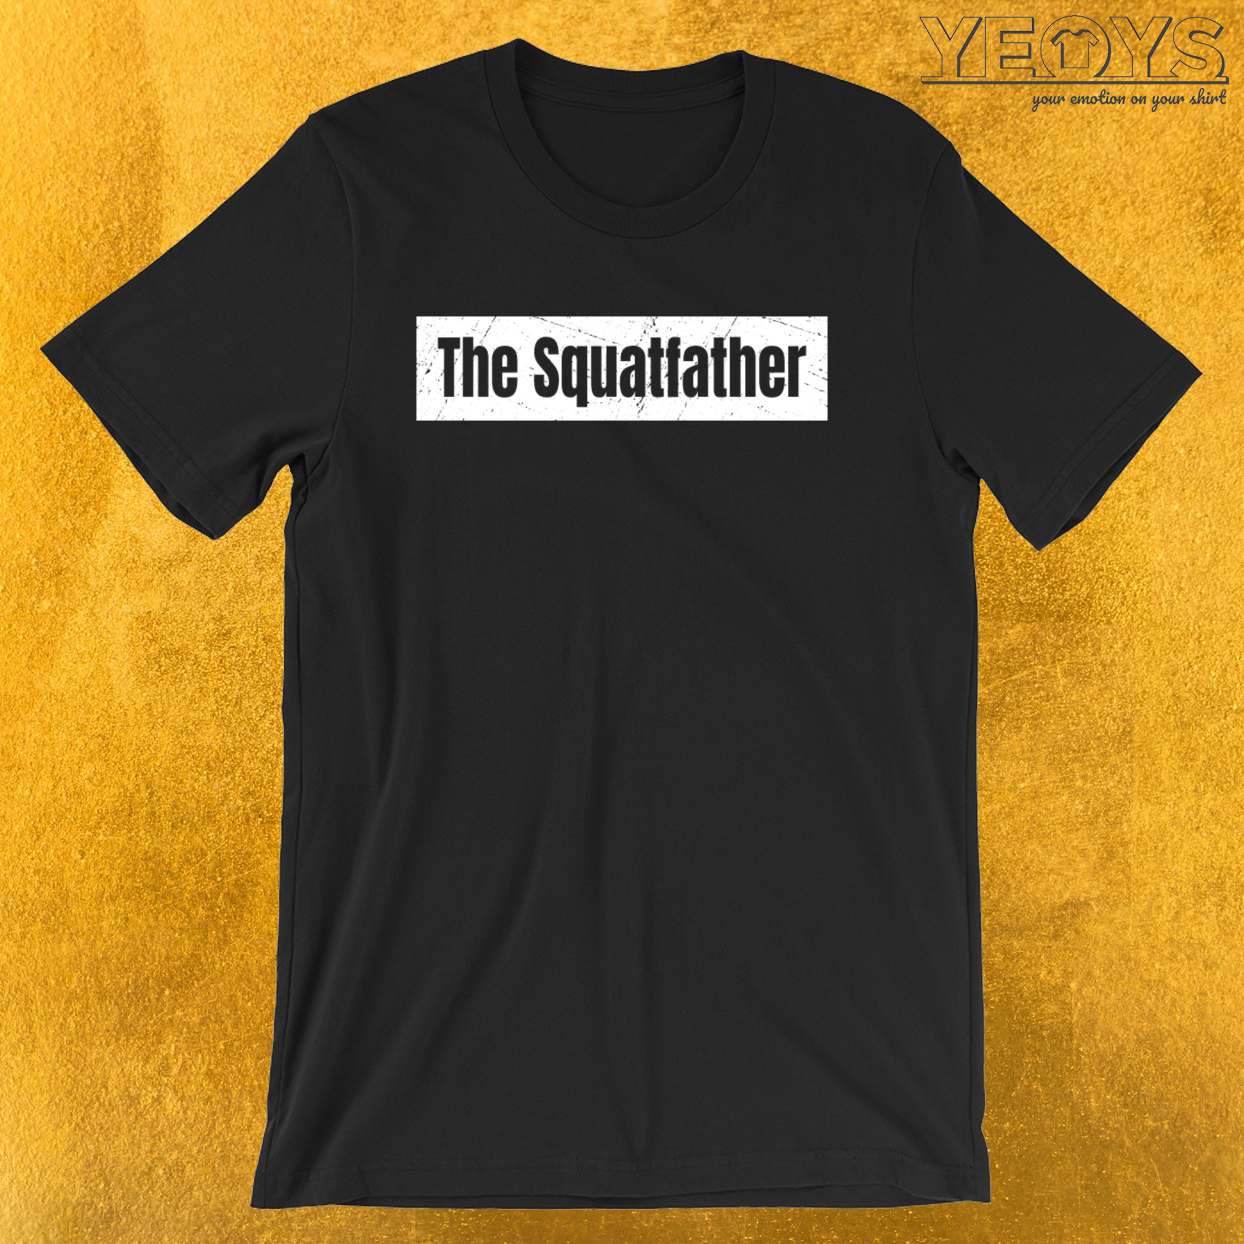 The Squatfather – Squating Tee